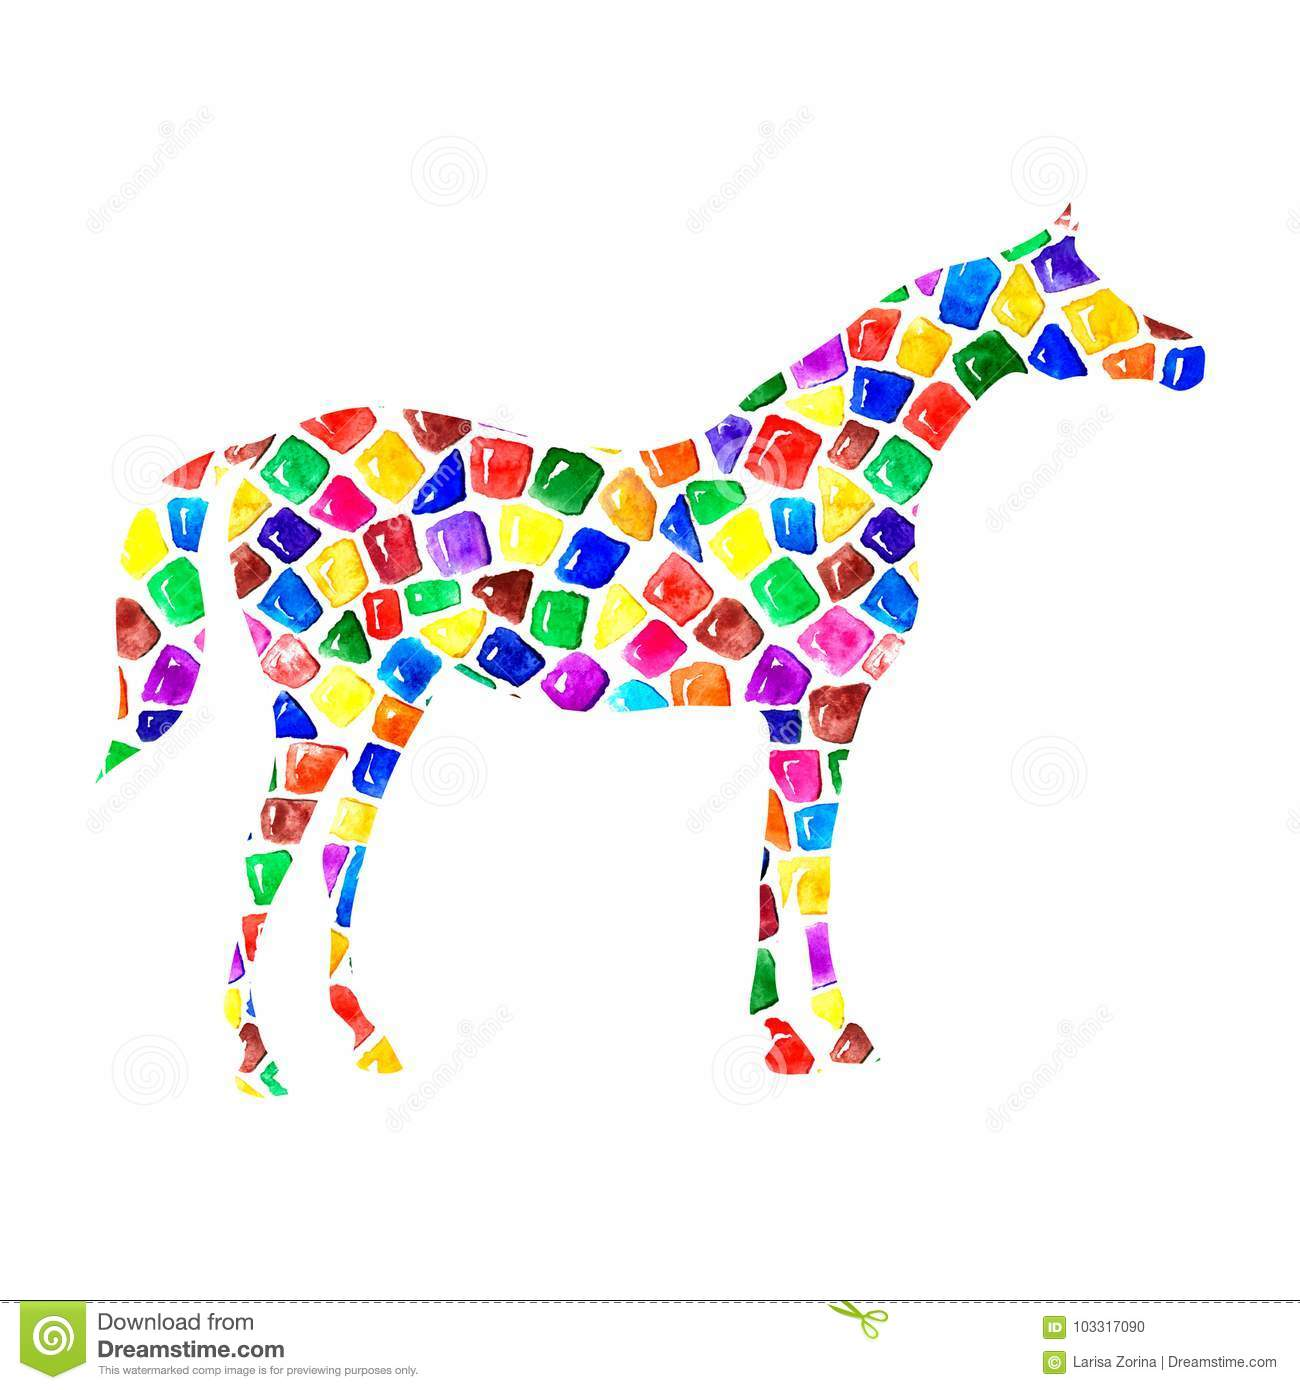 Arabian Horse Silhouette With Watercolor Bright Colorful Mosaic Pied Tile Texture On White Stock Illustration Illustration Of Fashion Champion 103317090